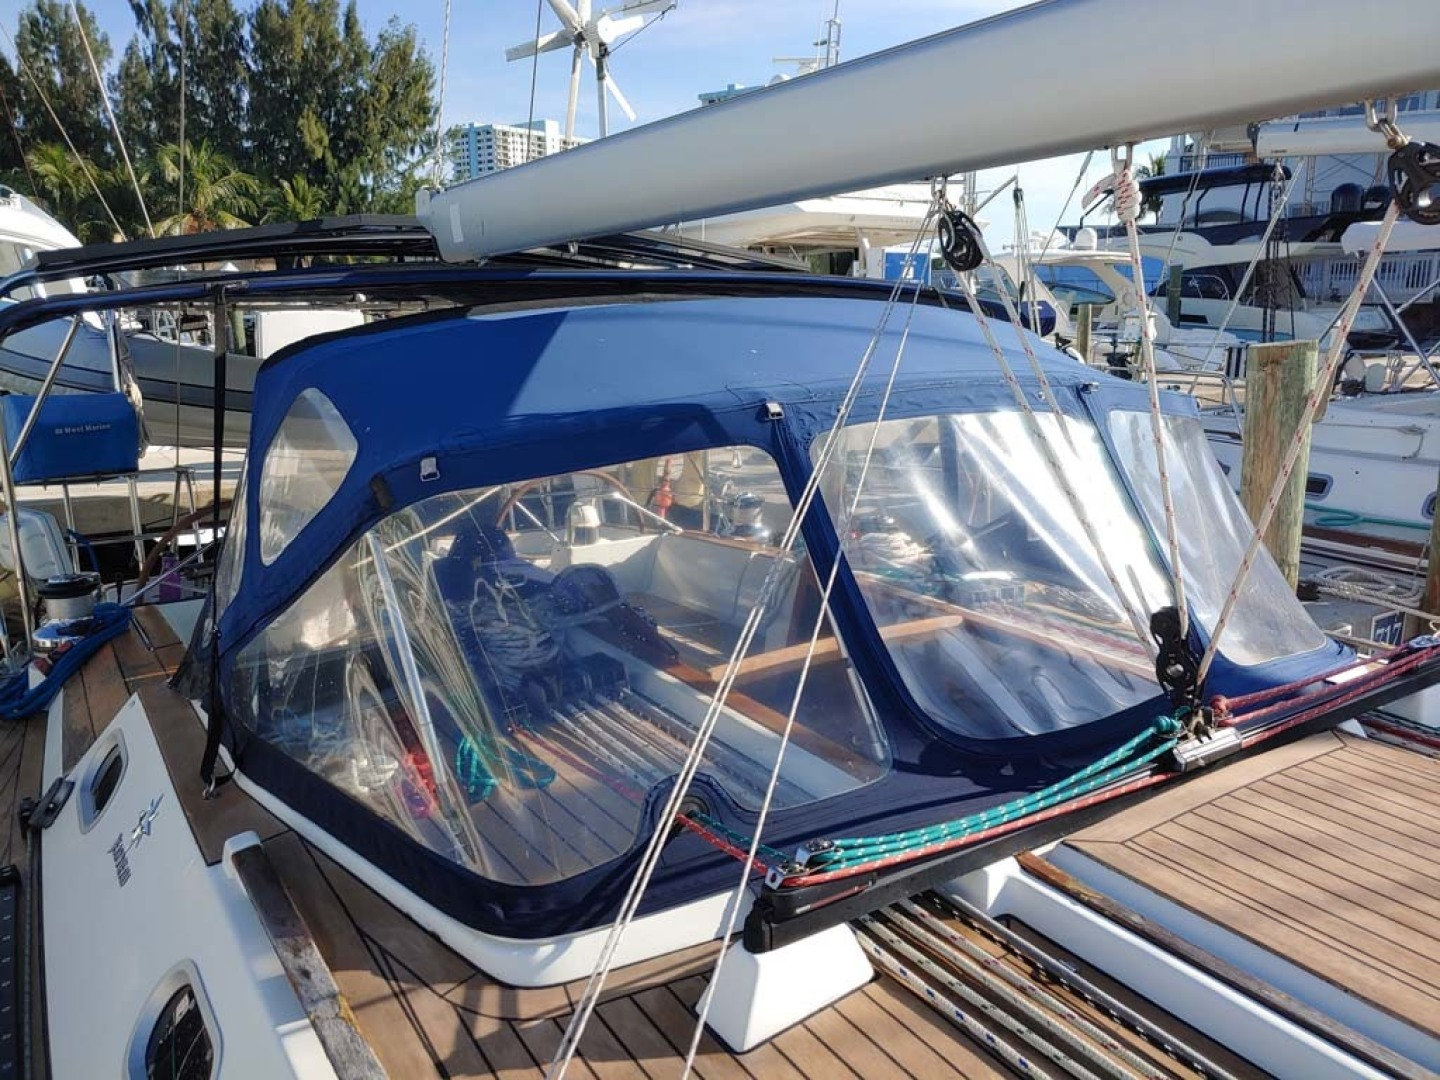 Jeanneau-Sun Odyssey 52.2 2001-Perseverance Hollywood-Florida-United States-Helm Dodger-1631450 | Thumbnail